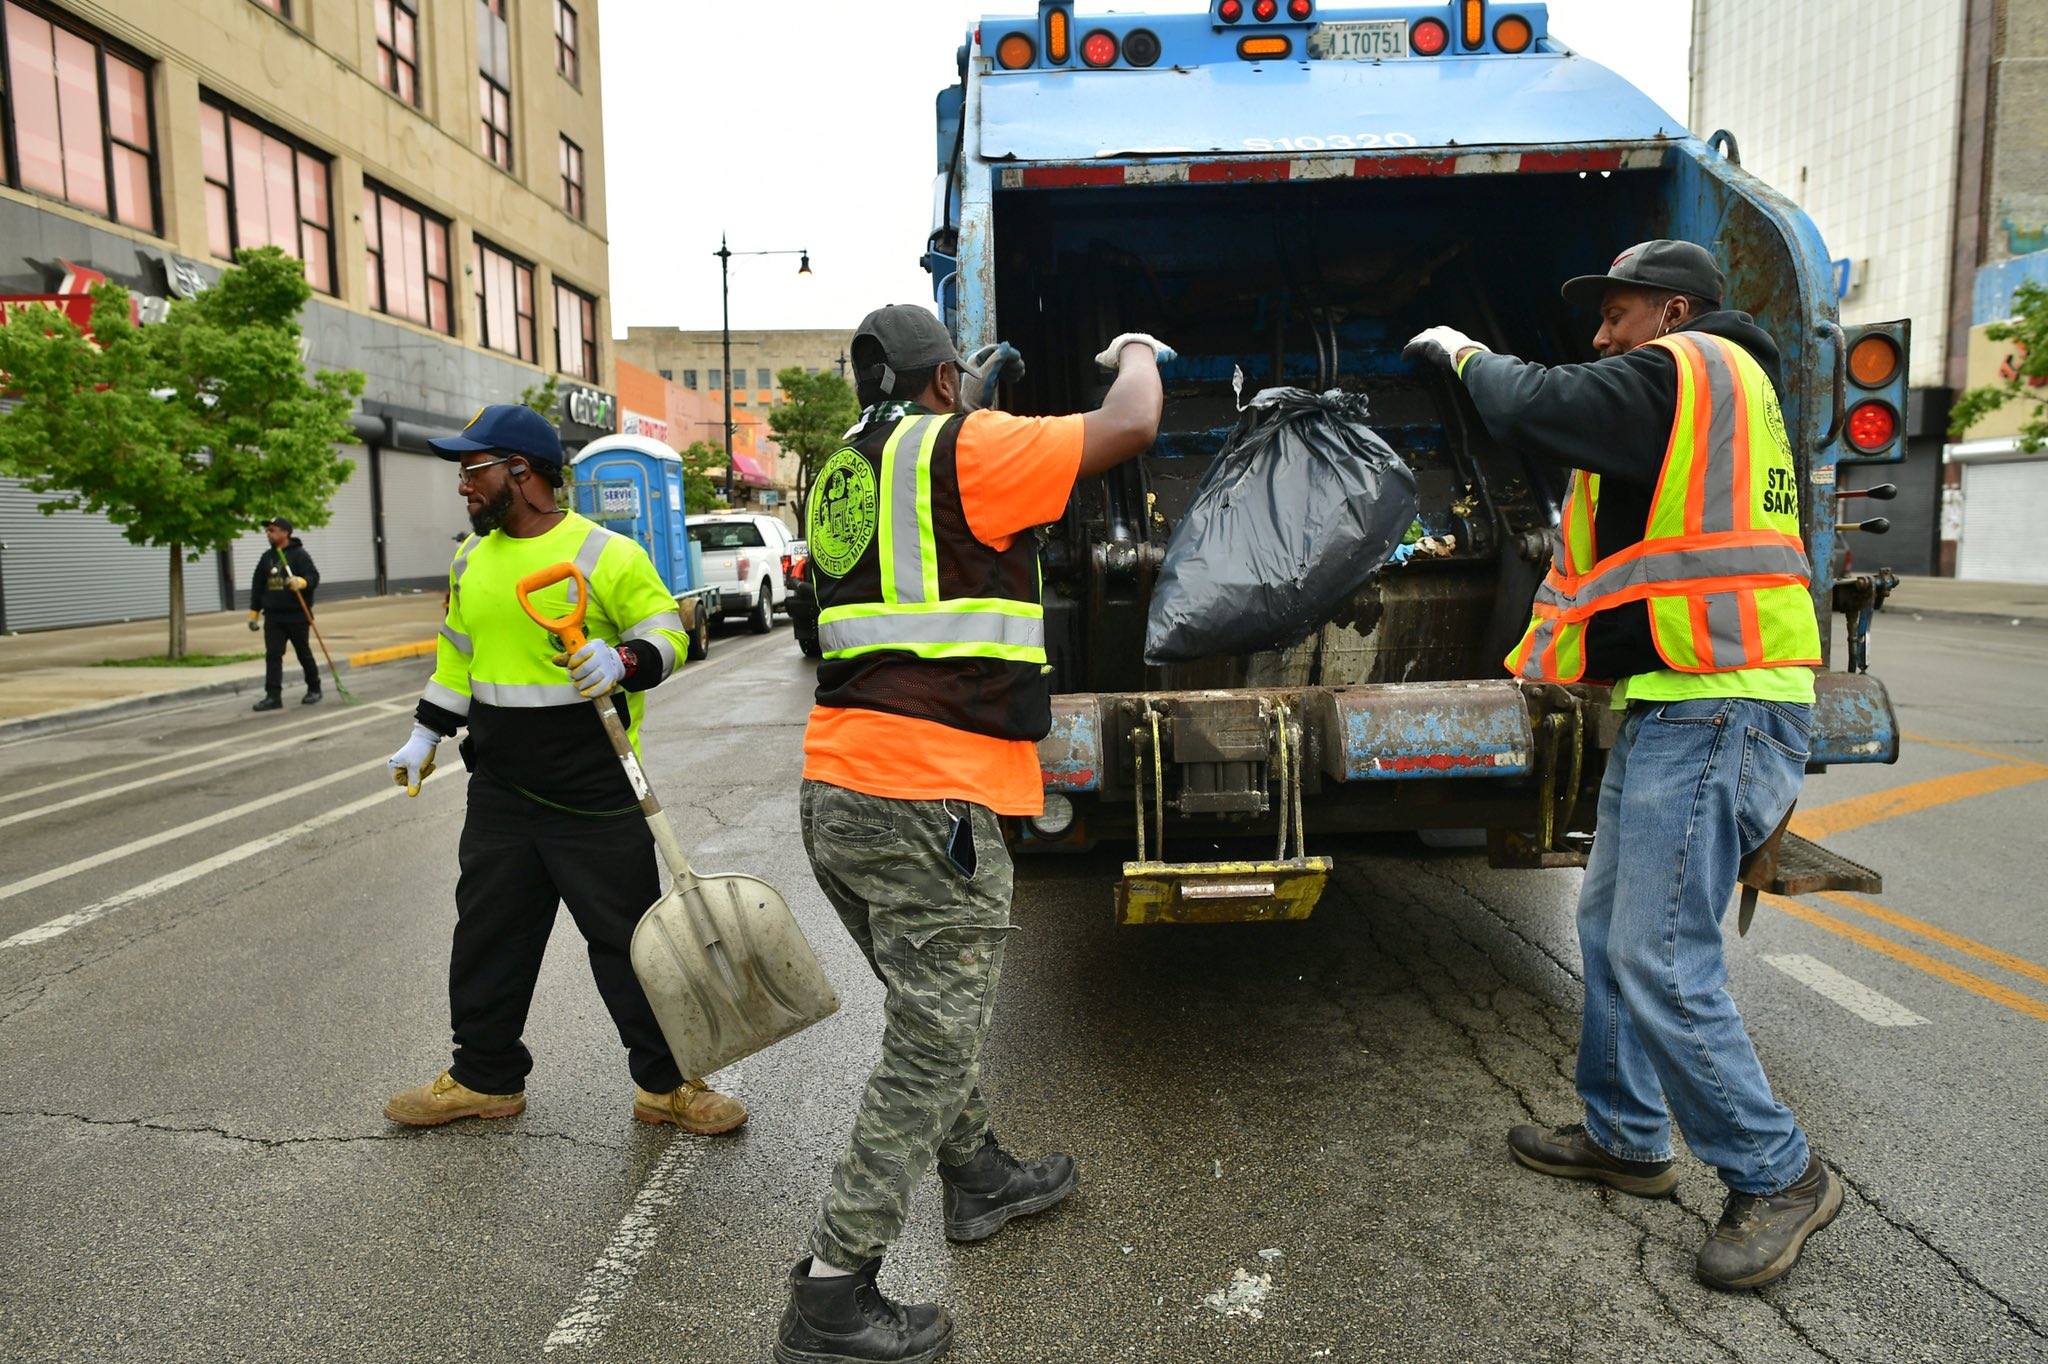 The city's contract with garbage collection workers requires three people to staff each truck — something Mayor Lori Lightfoot wants to reconsider.